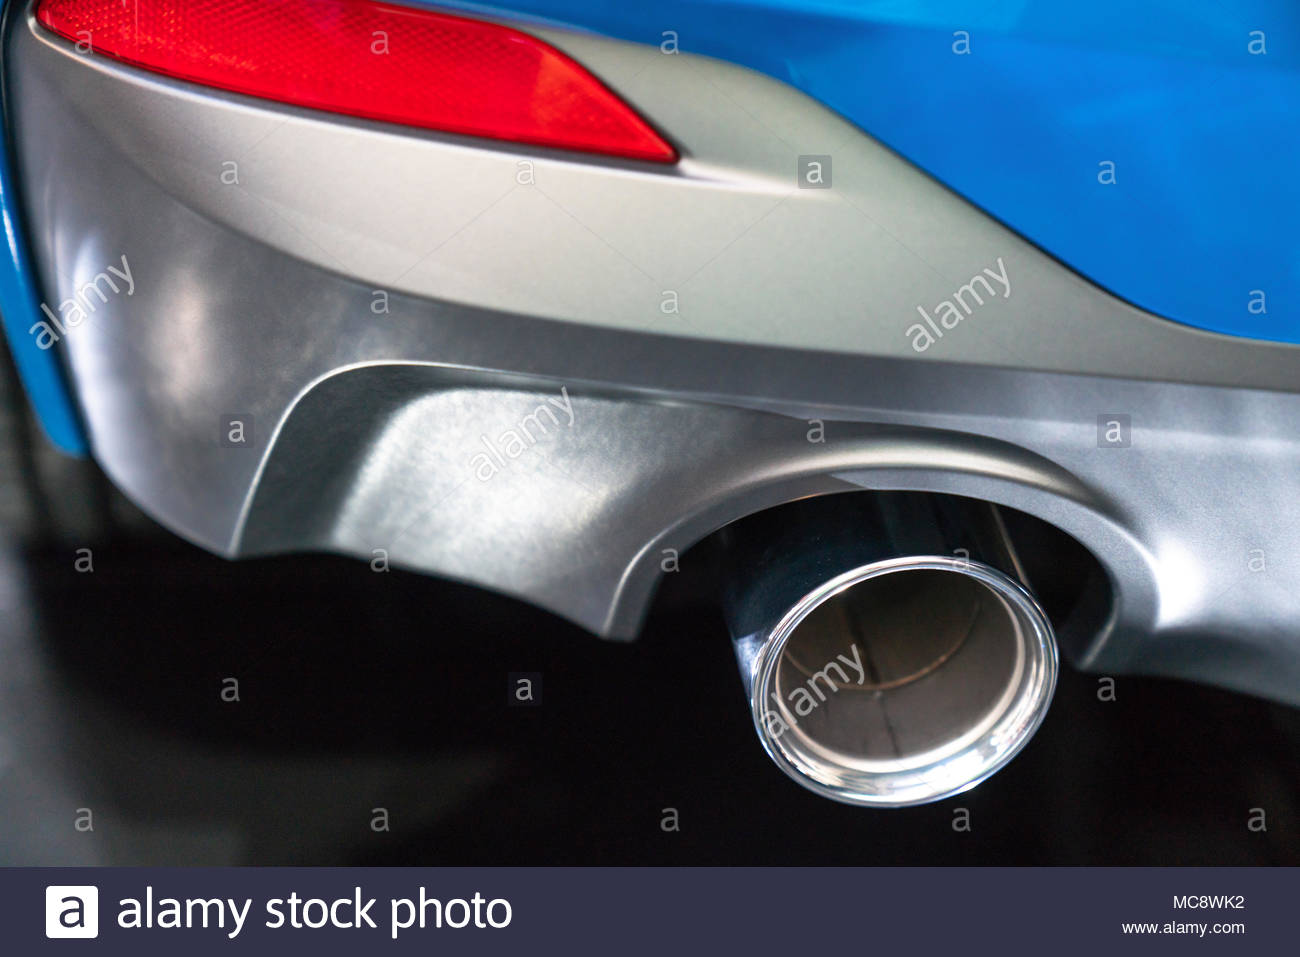 New generation of sportive mufflers. Oval Car Exhaust Tailpipe chromed made of stainless steel on powerful sport car bumper. Close up & New generation of sportive mufflers. Oval Car Exhaust Tailpipe ...